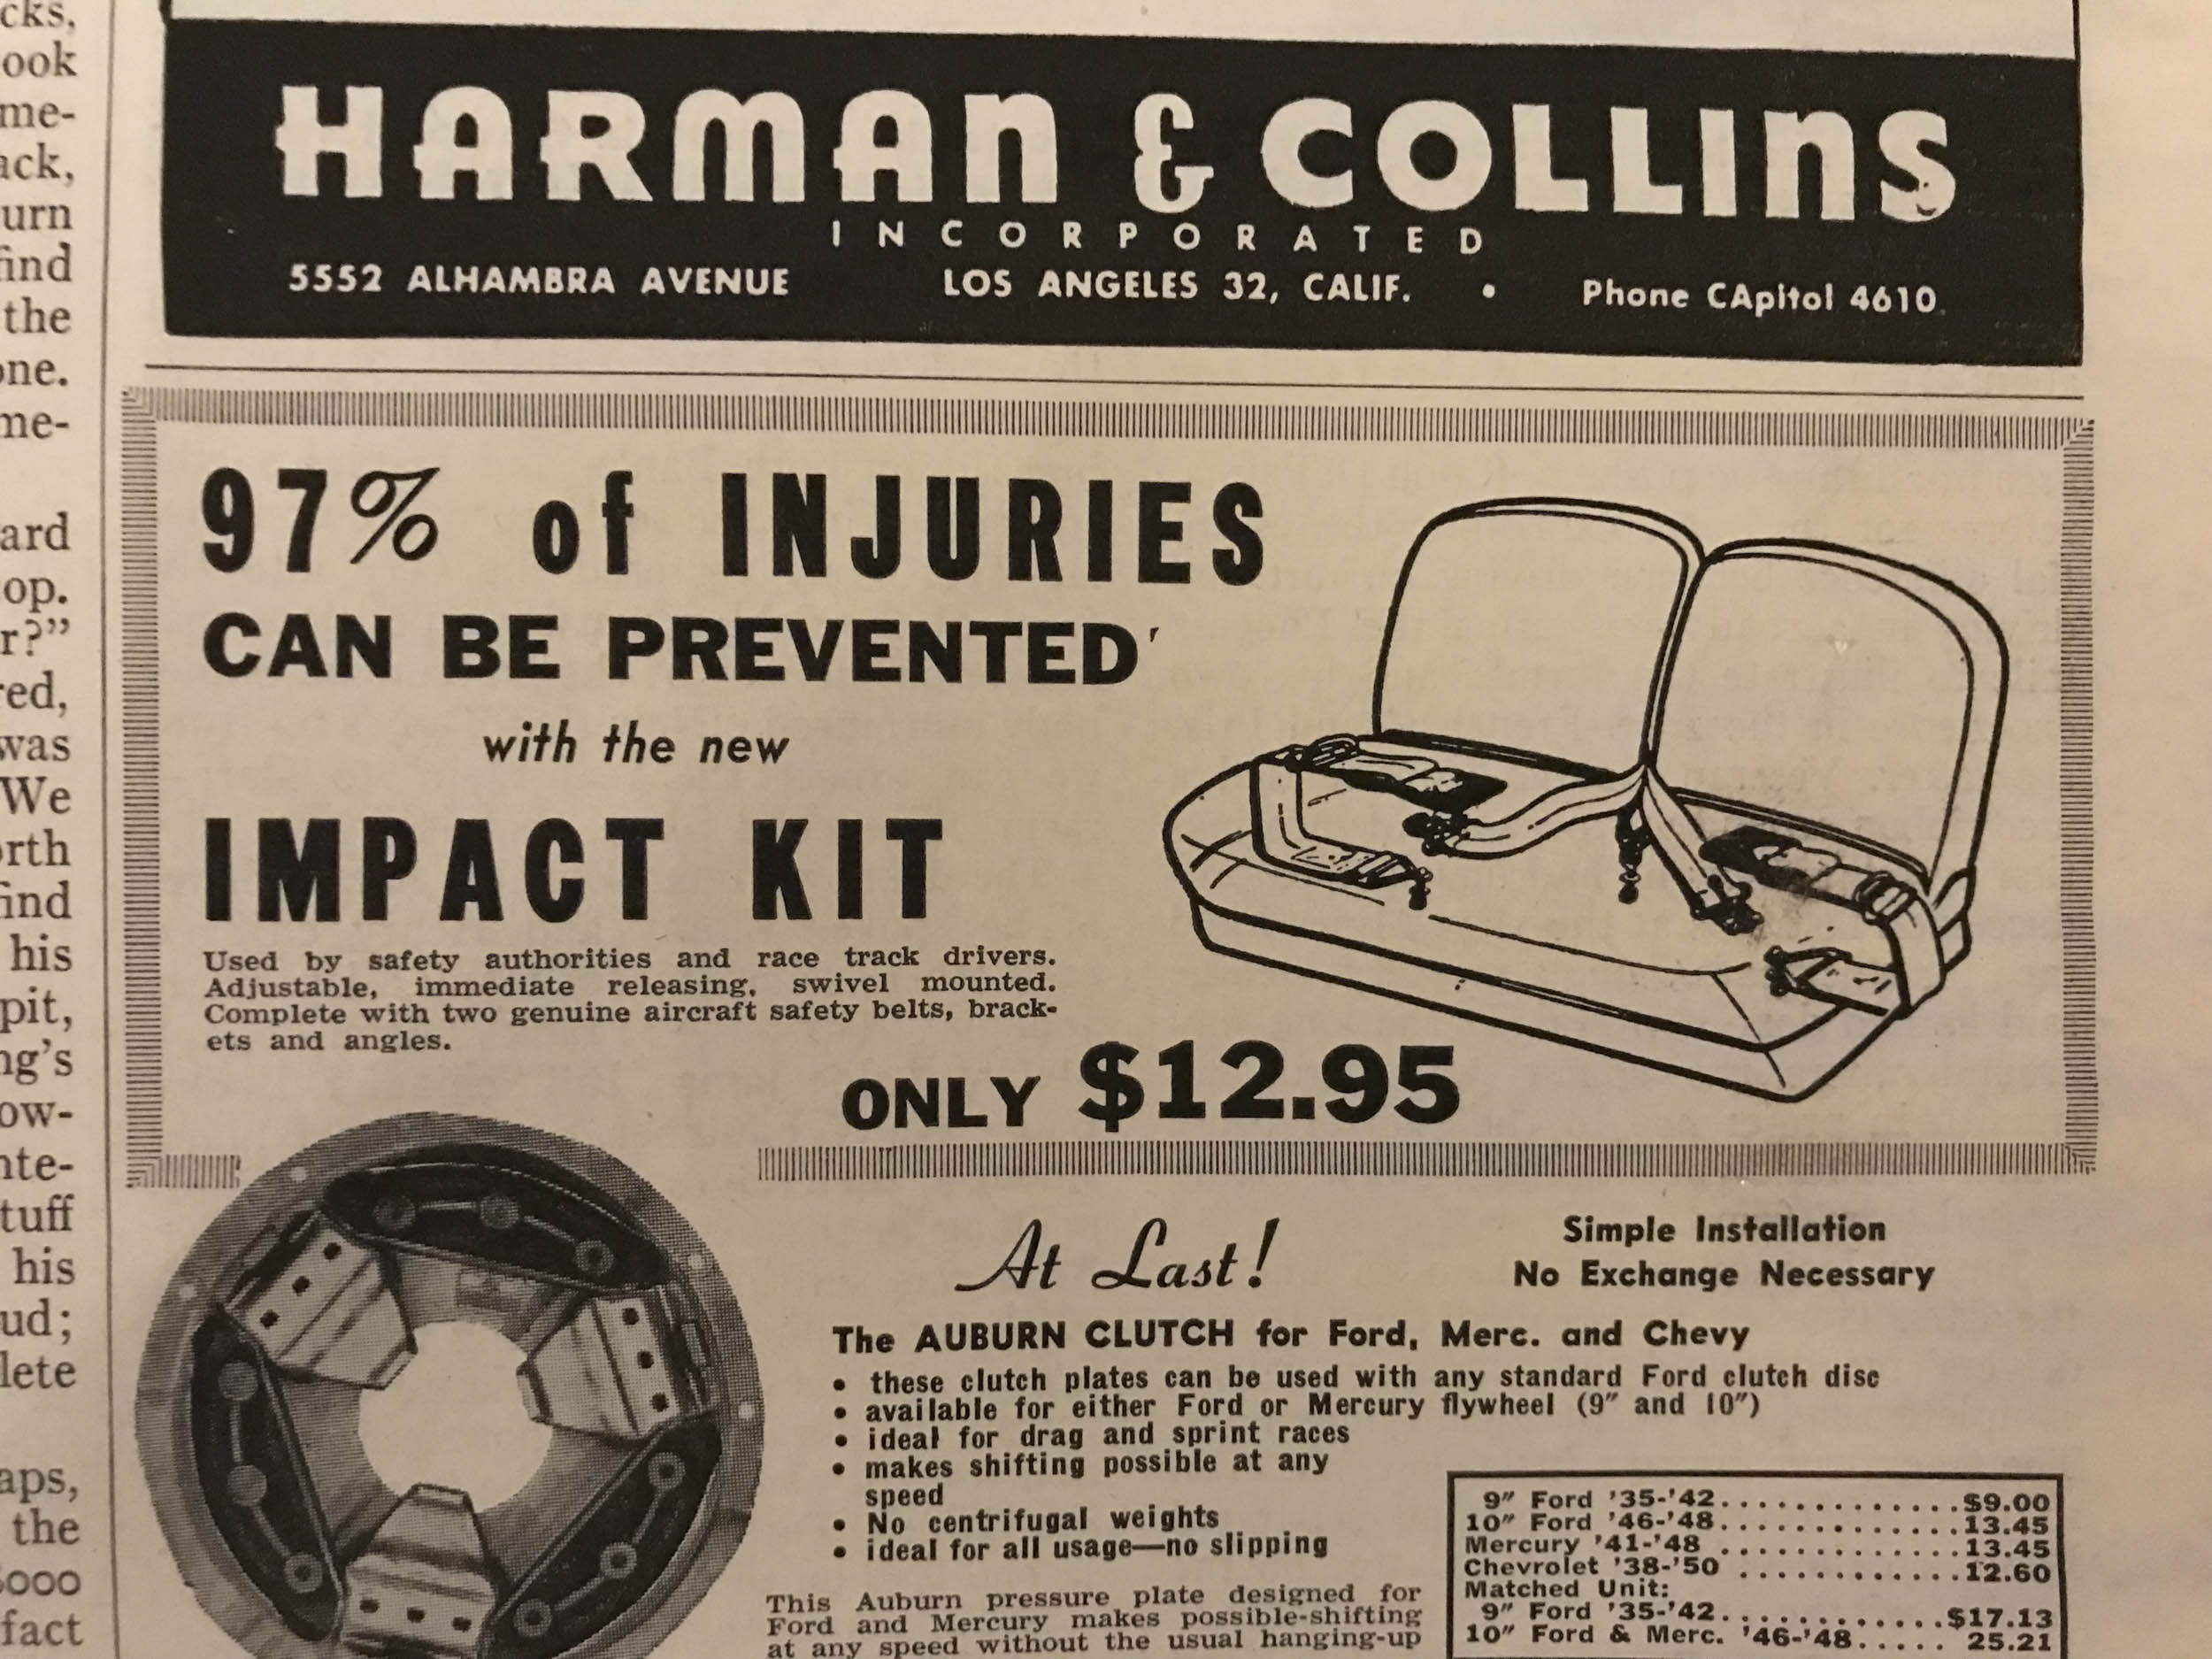 Harman & Collins Impact Kit (1952)